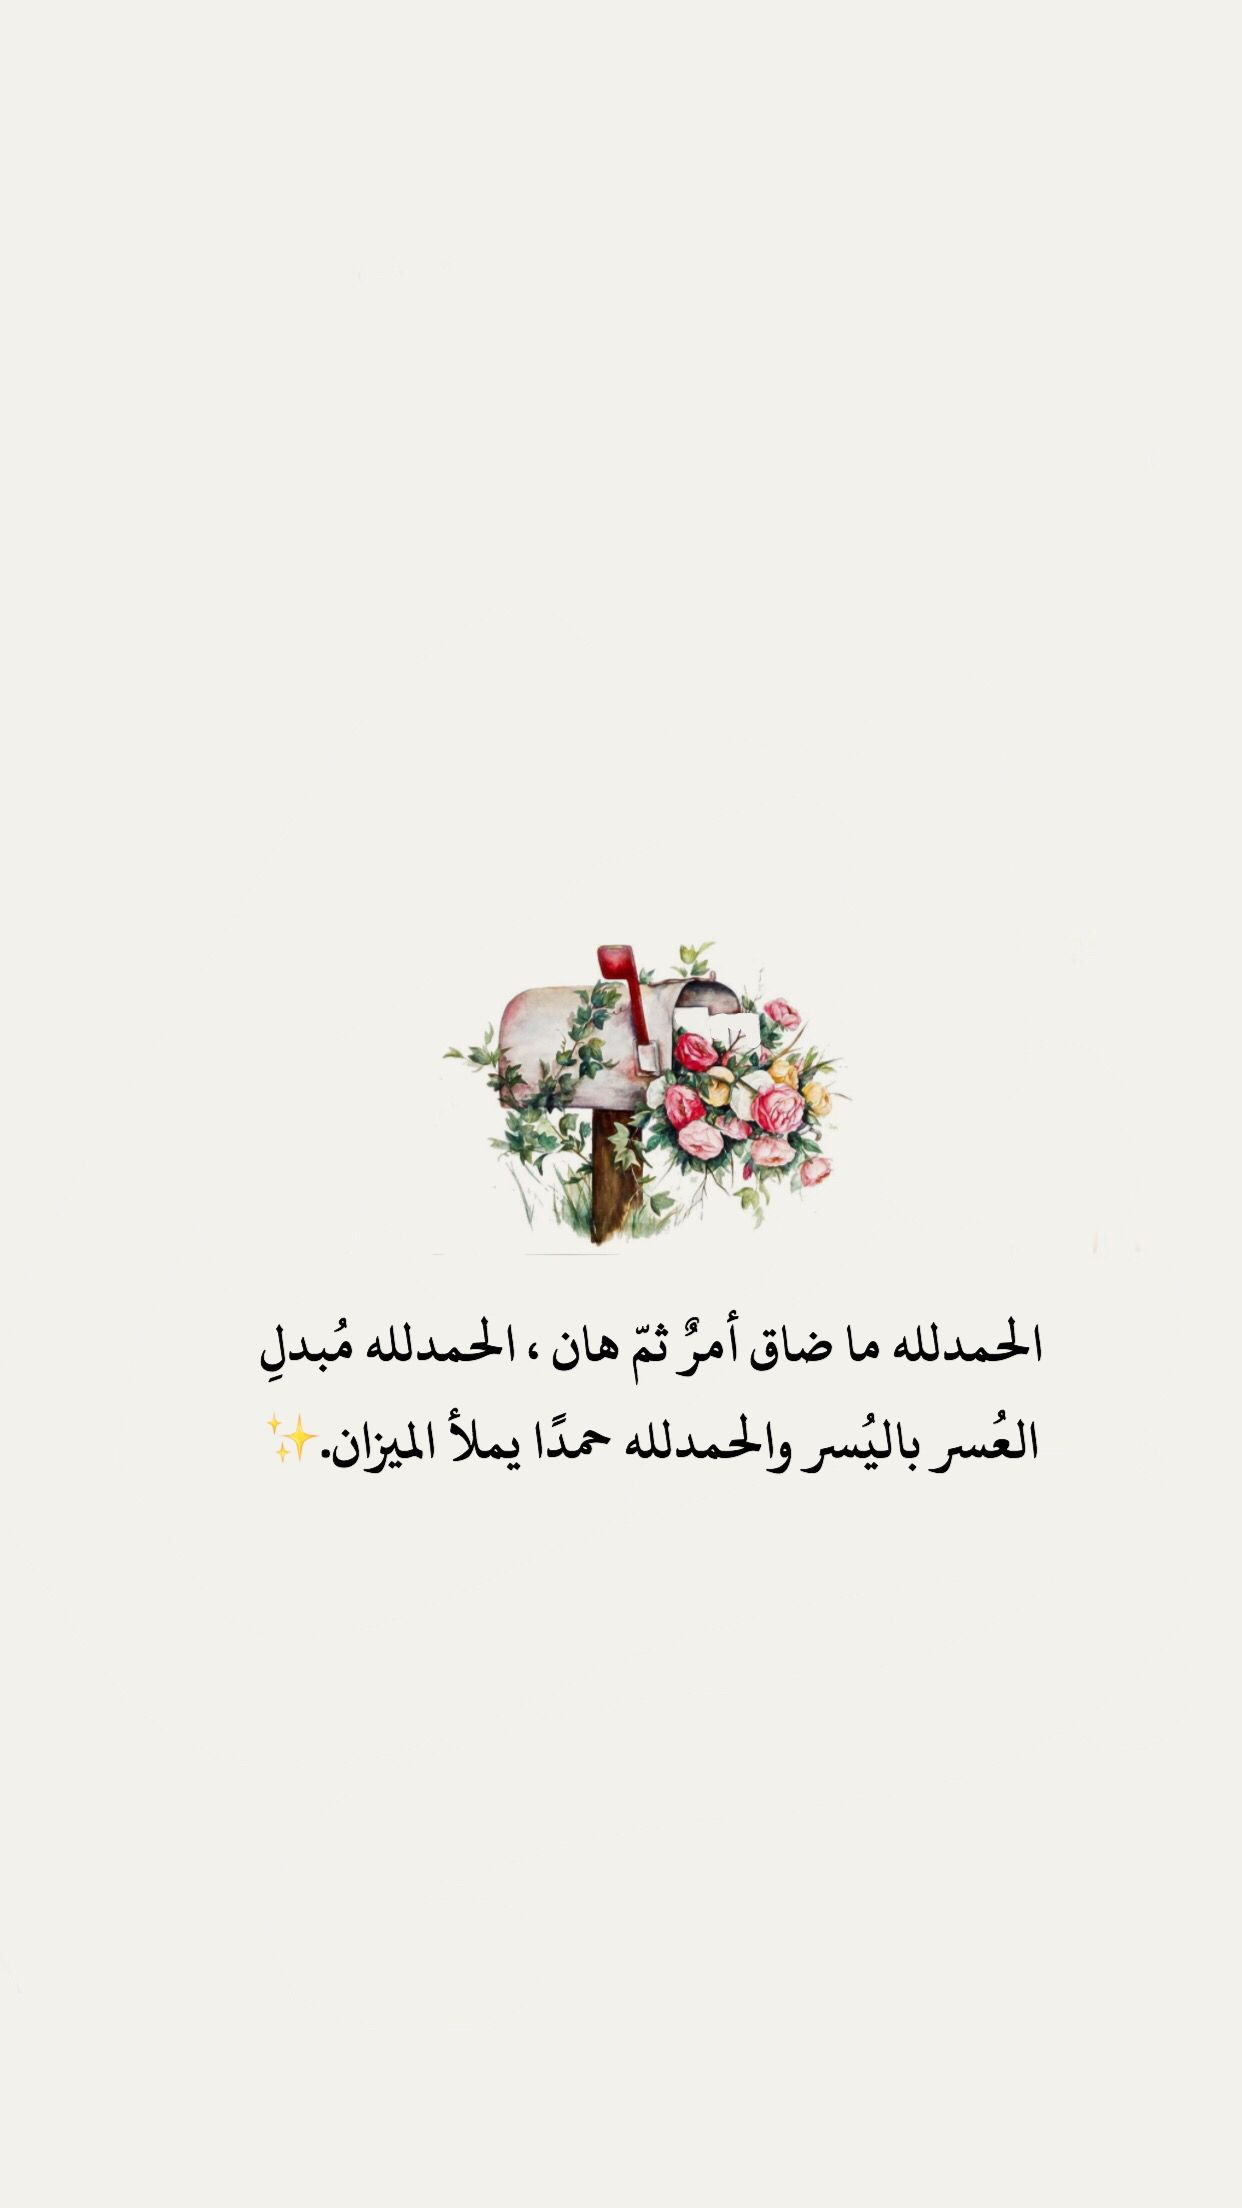 Pin By Abeer Ad On Islam Quran Quotes Love Beautiful Quran Quotes Love Quotes Wallpaper